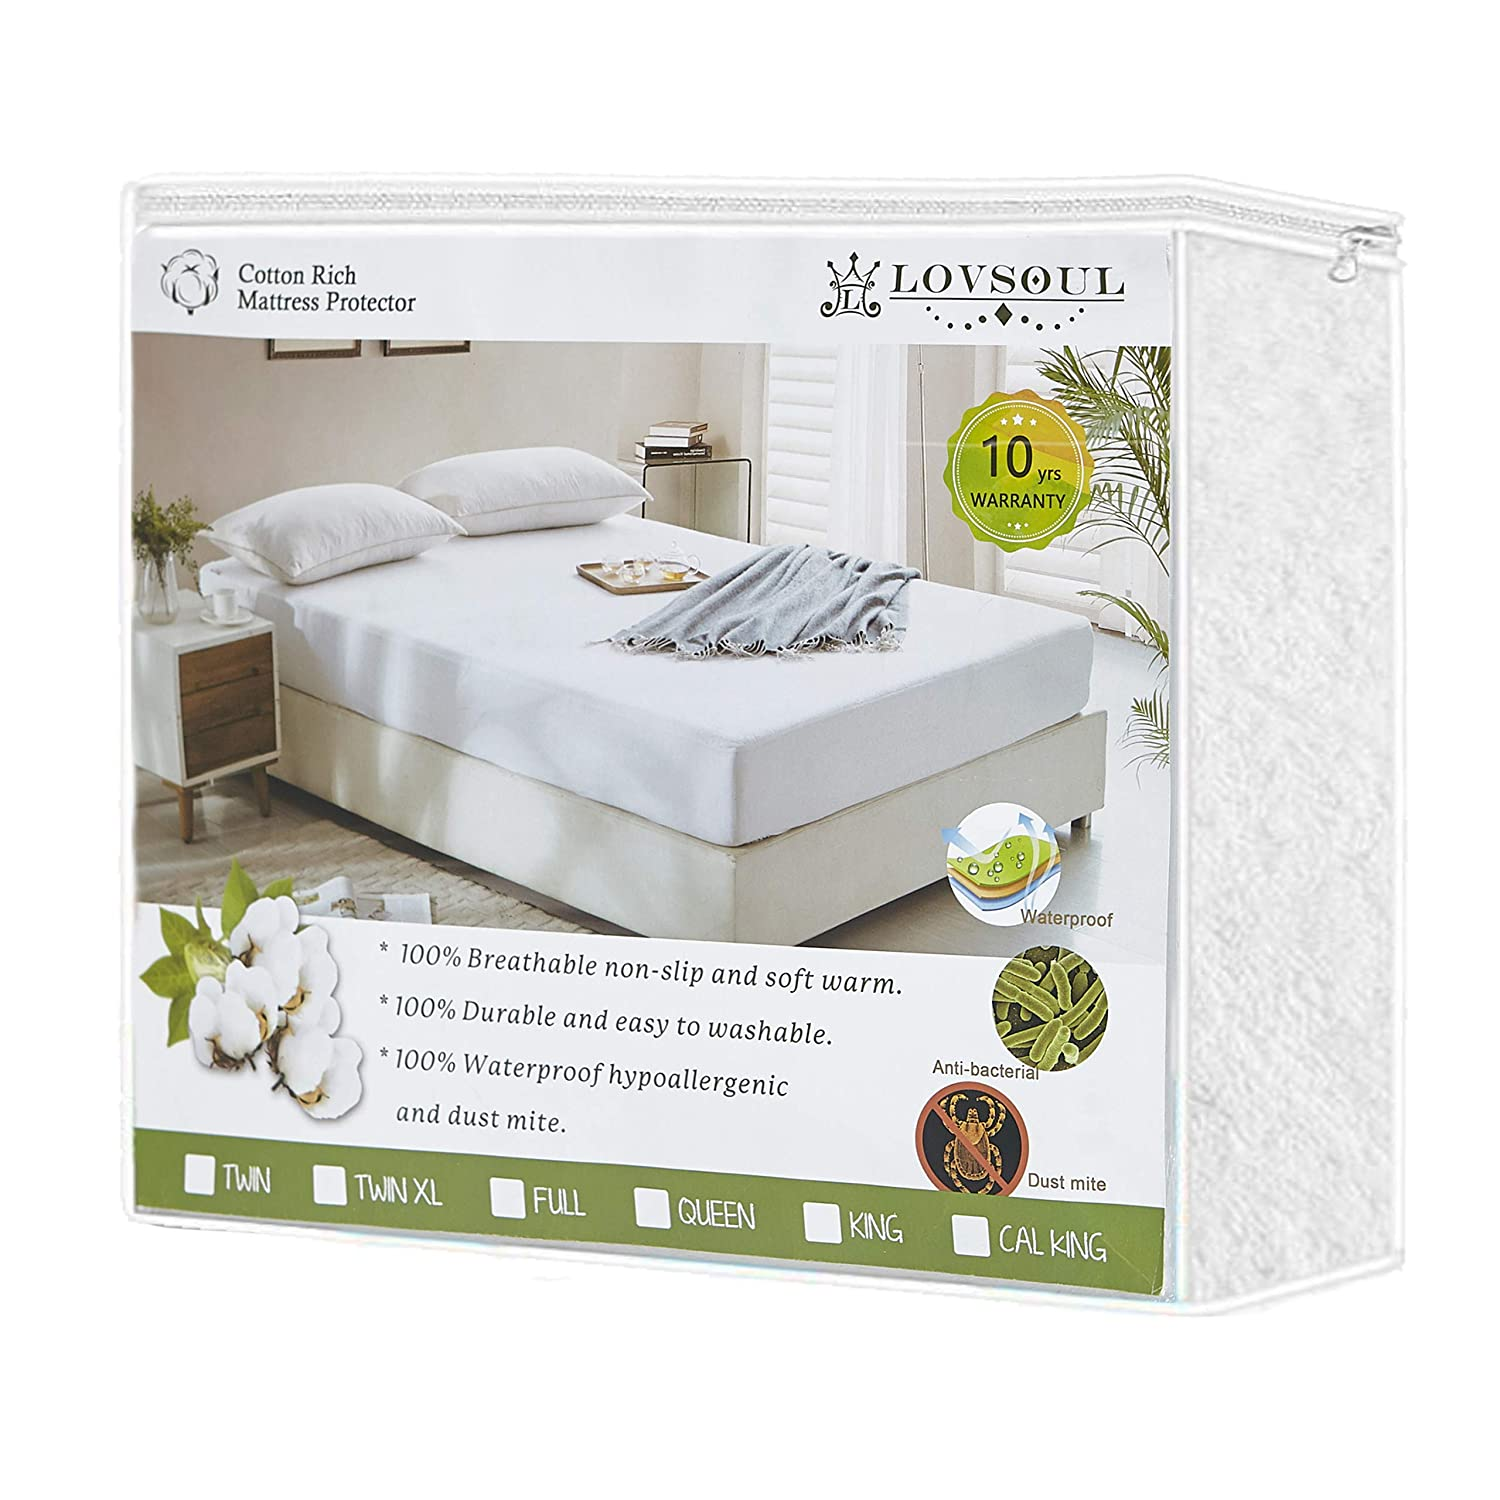 L LOVSOUL Twin Mattress Protector,Waterproof Mattress Protector 39X75Inches,Deep Pockets(Up to 14inches Deep) Hypoallergenic Mattress Encasement,Vinly Free,10 Year Warranty